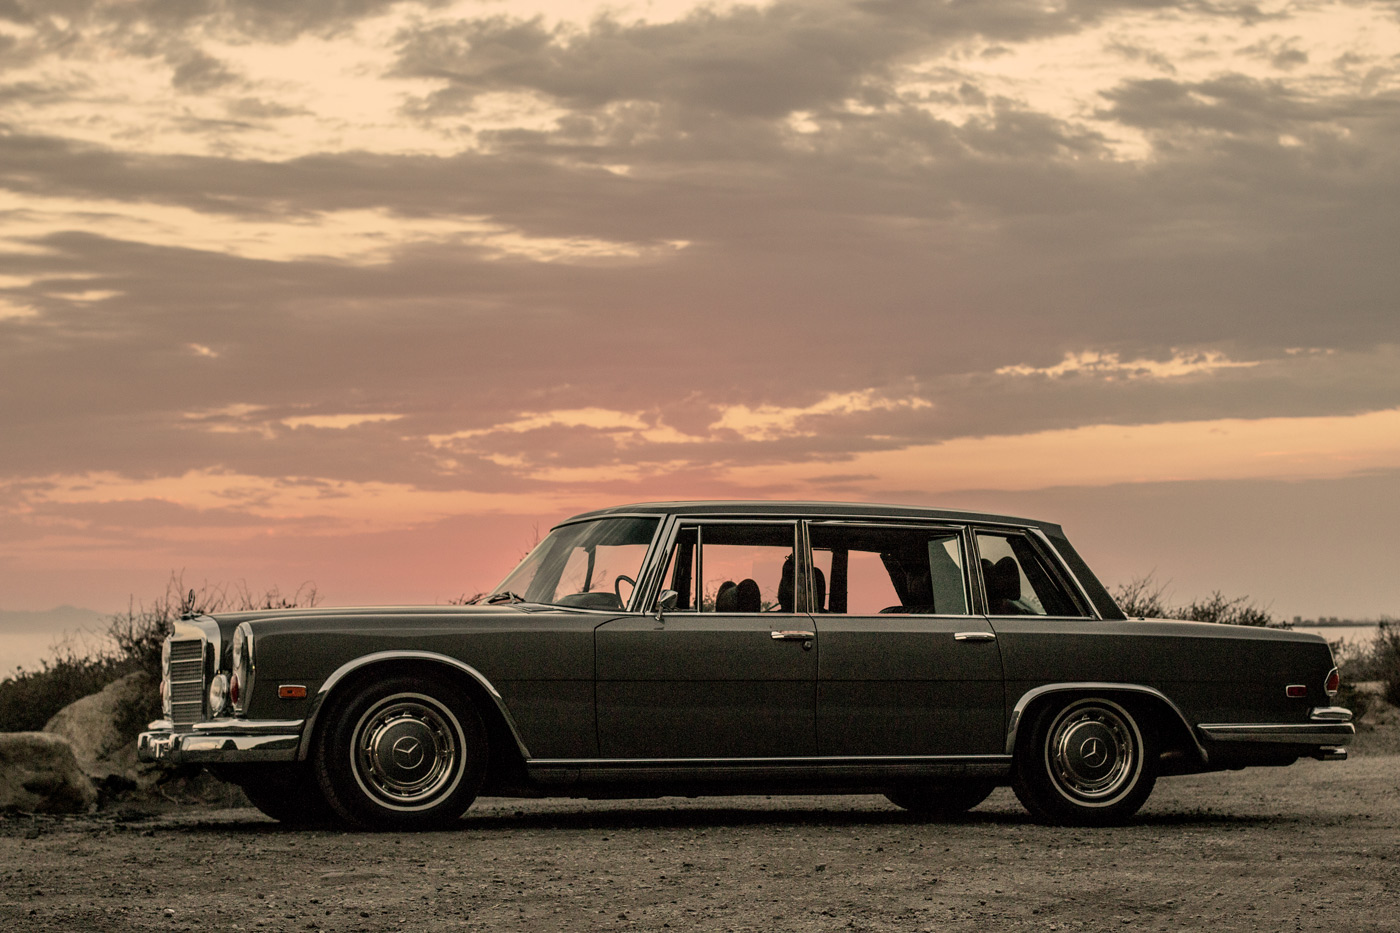 1972 mercedes benz 600 sw mbclassics for 1972 mercedes benz